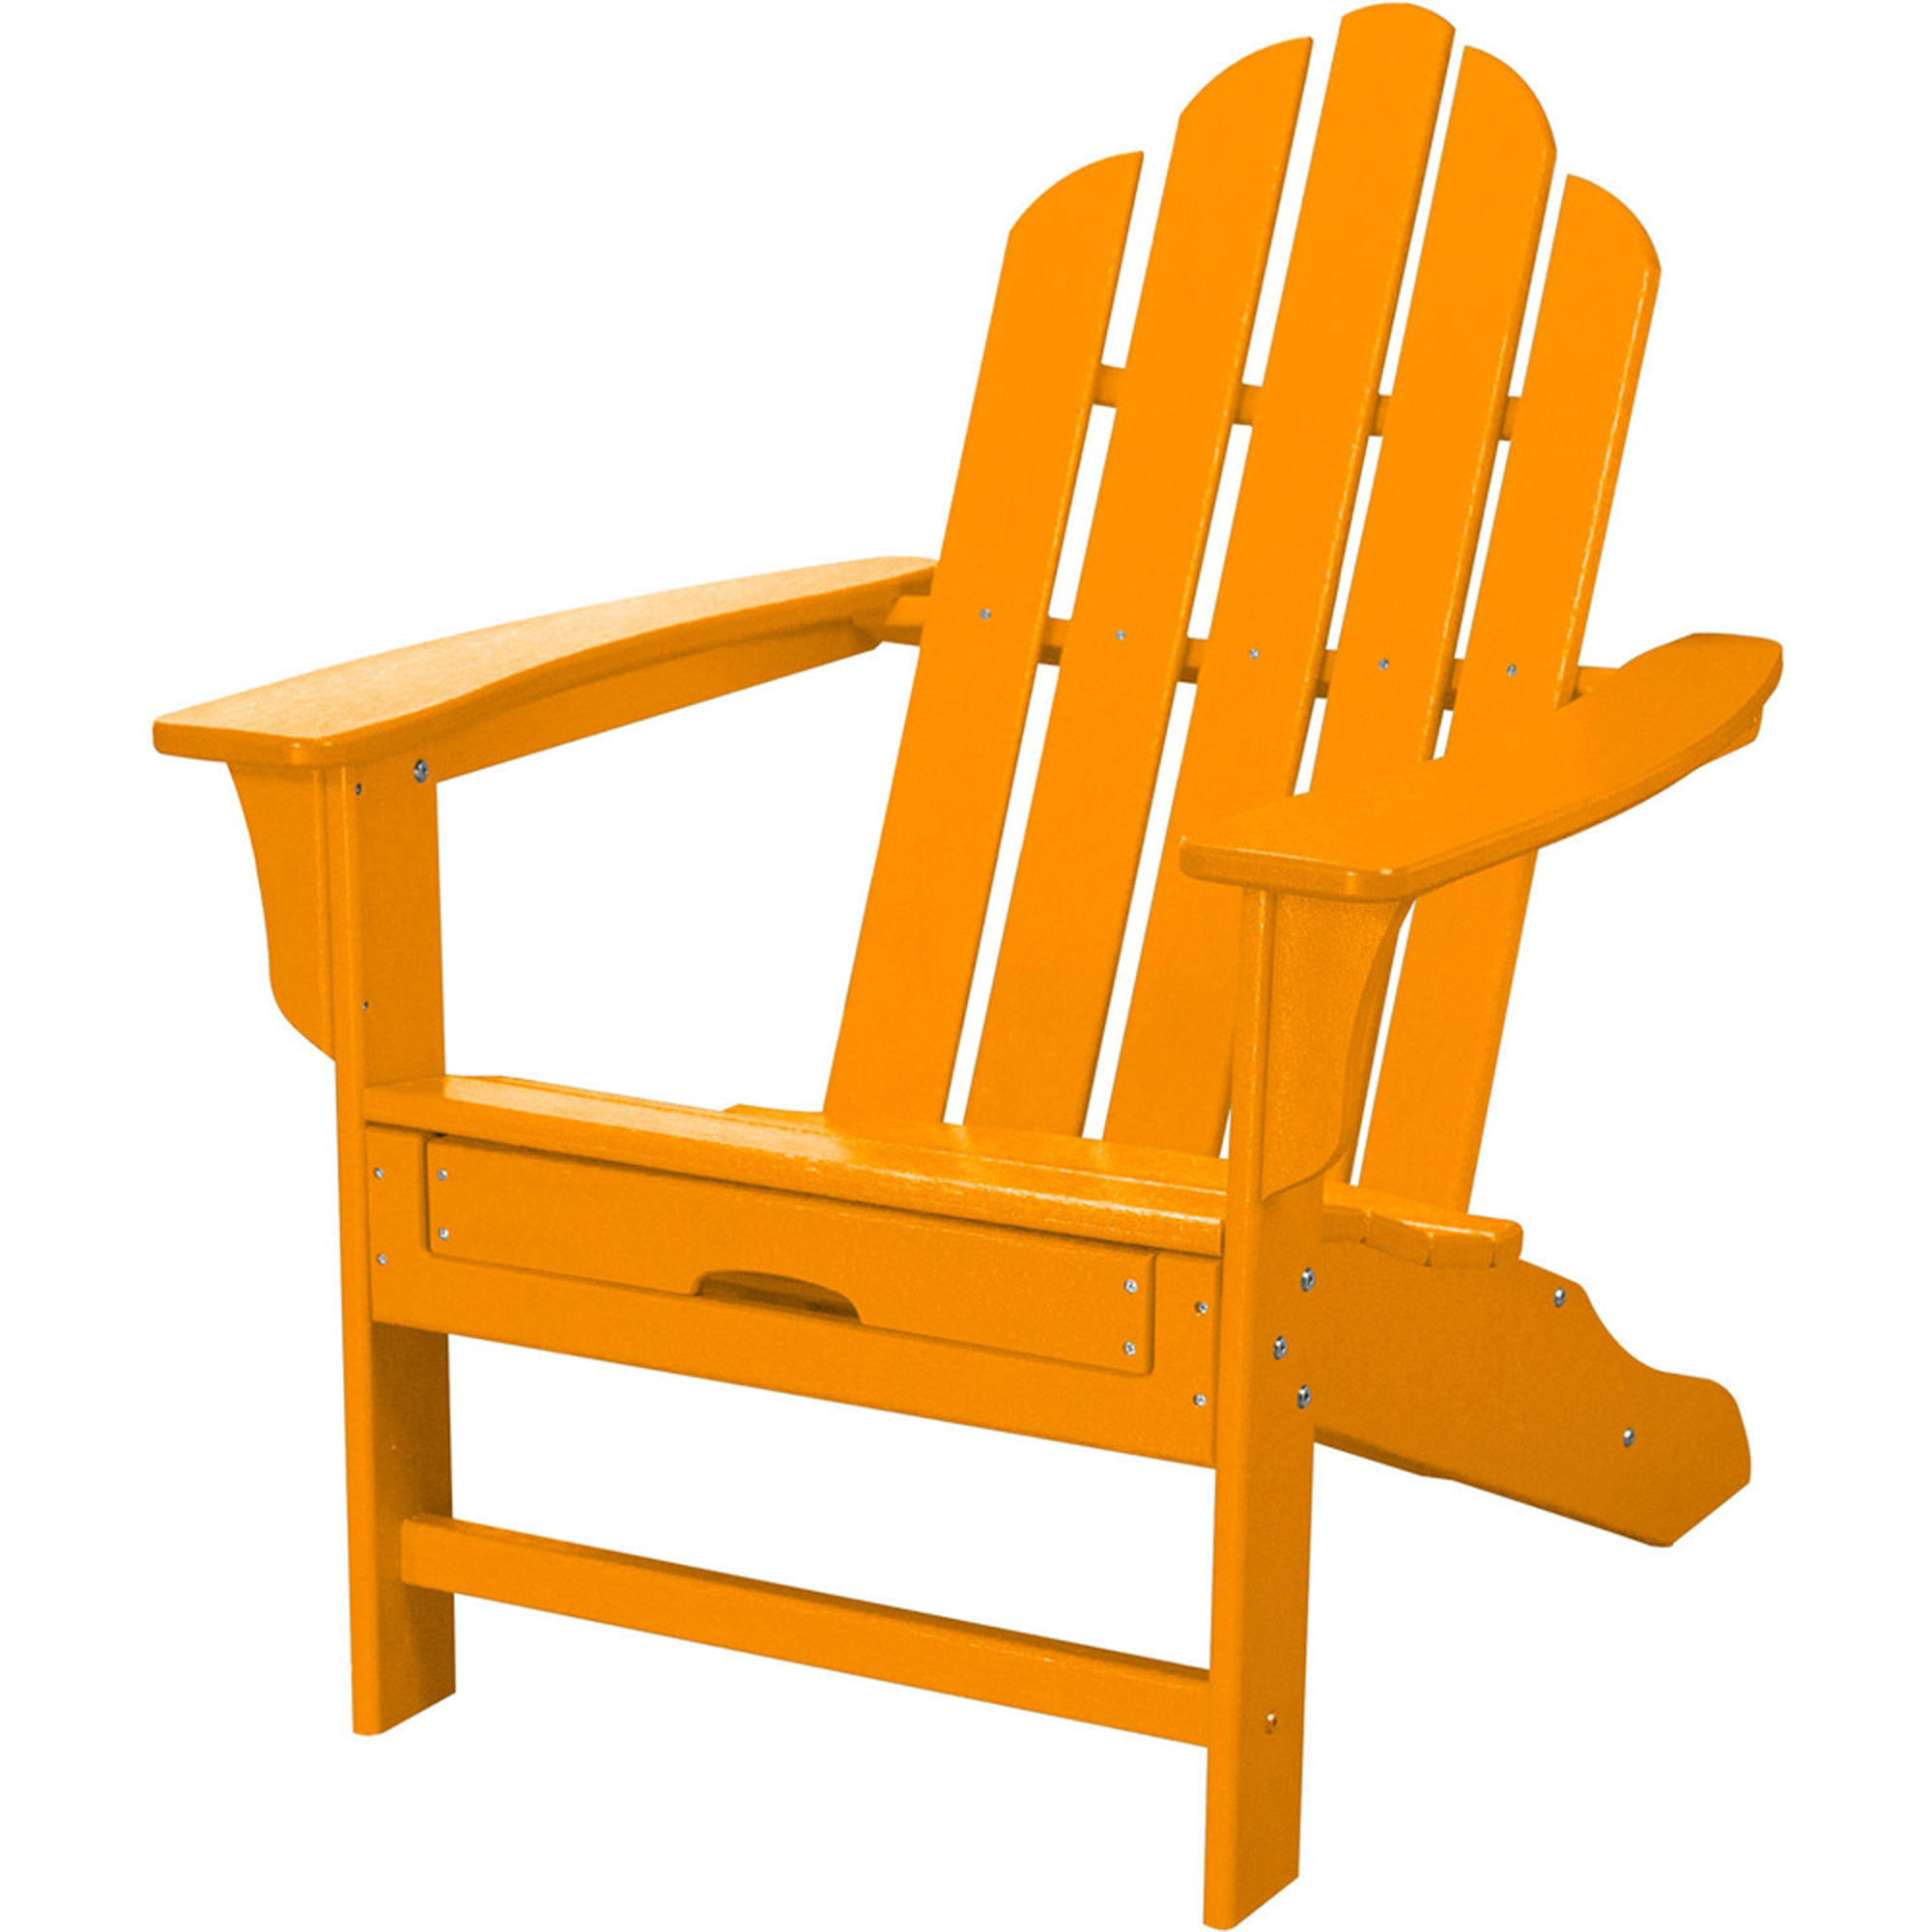 Hanover Outdoor Furniture All Weather Contoured Adirondack Chair